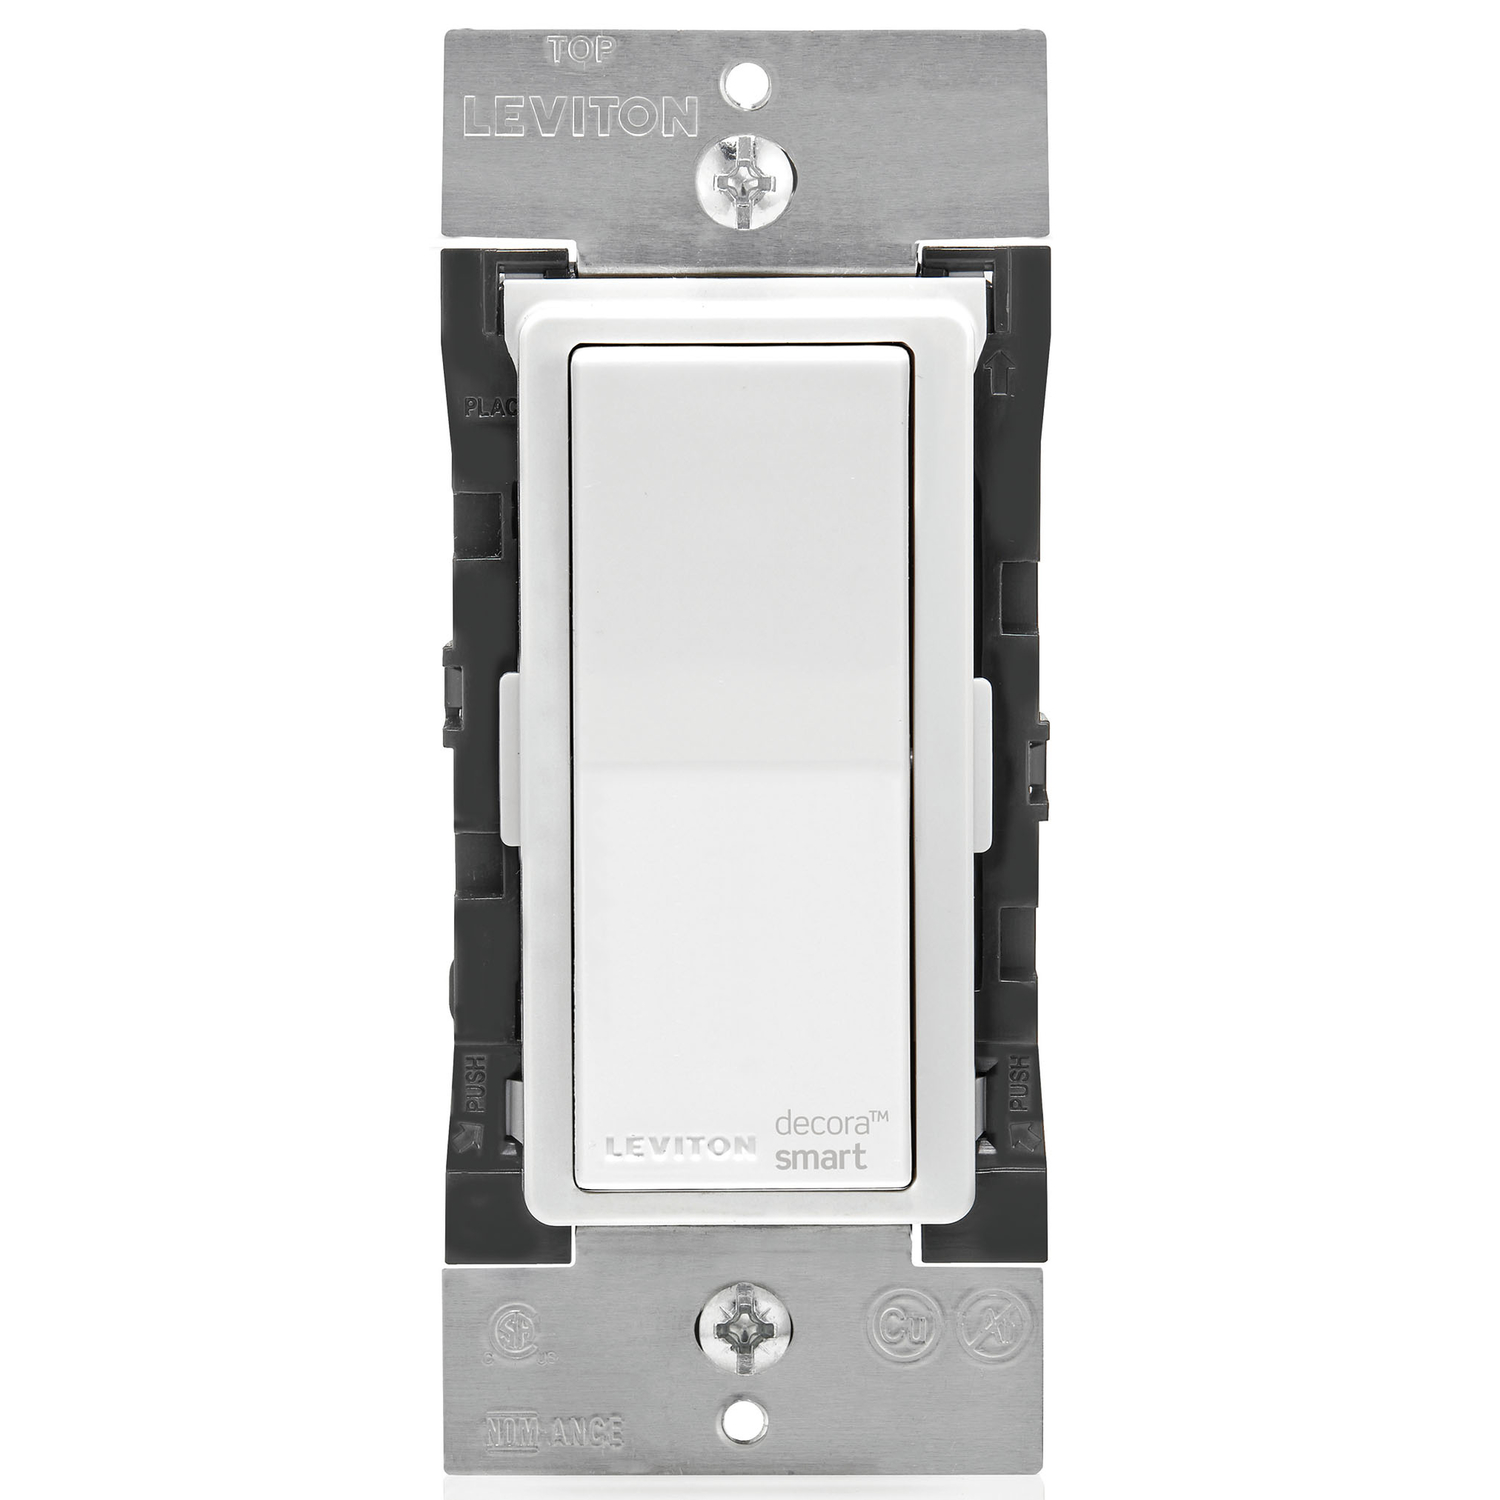 Leviton  Decora Smart  WiFi Smart  WiFi In-Wall Wireless Light Switch  1 pk Light Almond